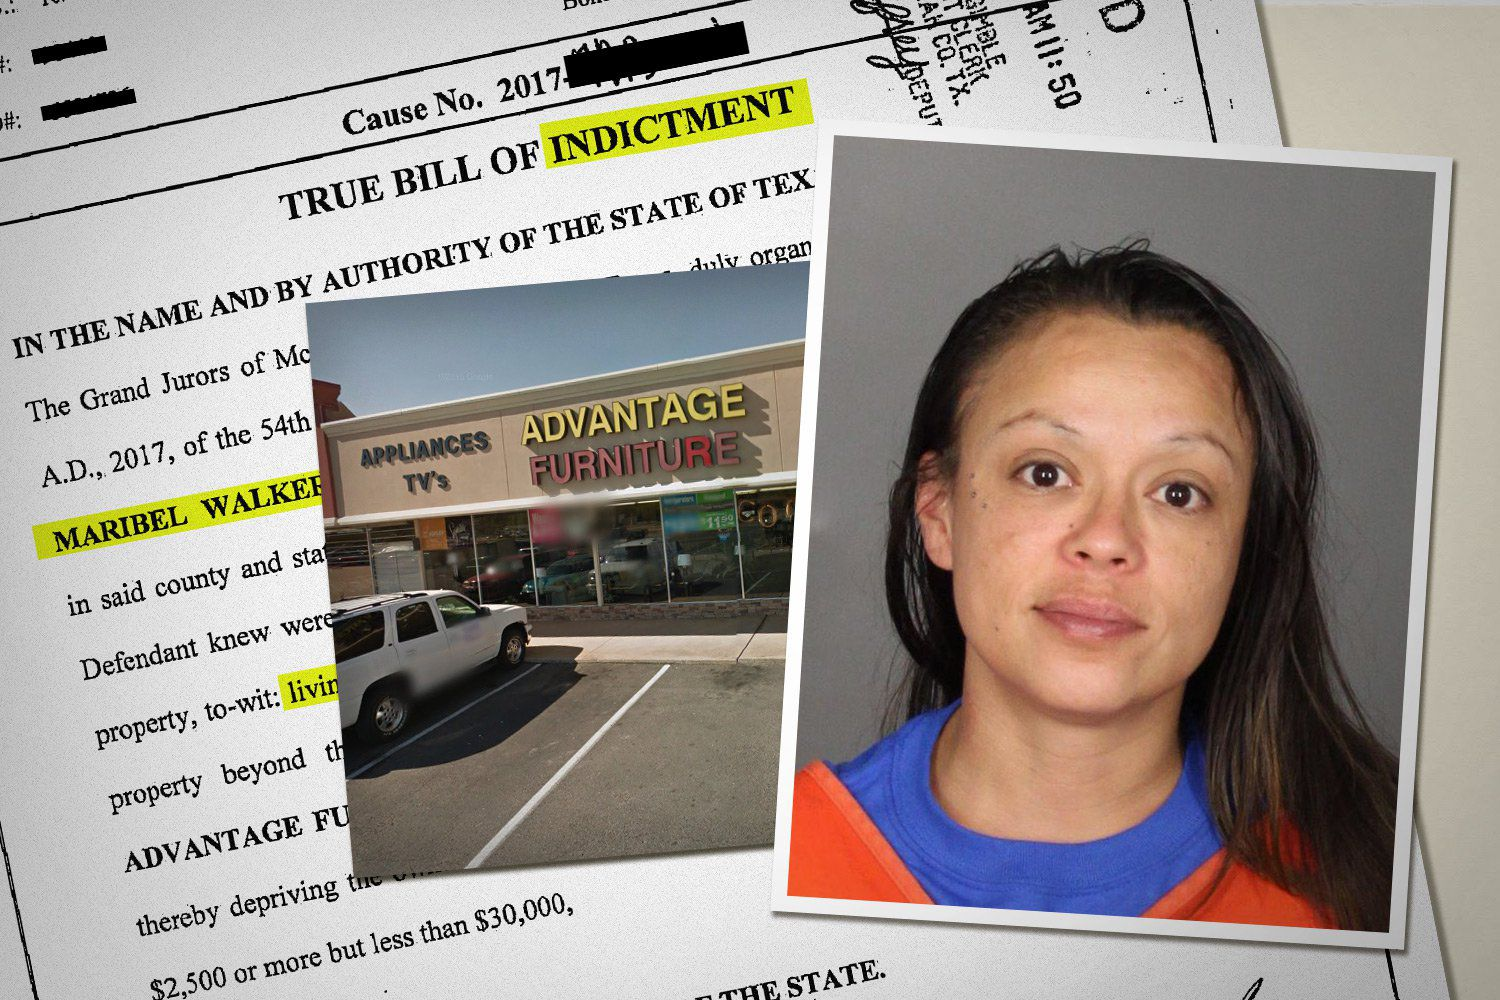 Maribel Walker rented bedroom and living room furniture in April 2015. When she forgot to make payments and failed to return the furniture for more than a year, she was arrested, jailed and now faces felony prosecution.